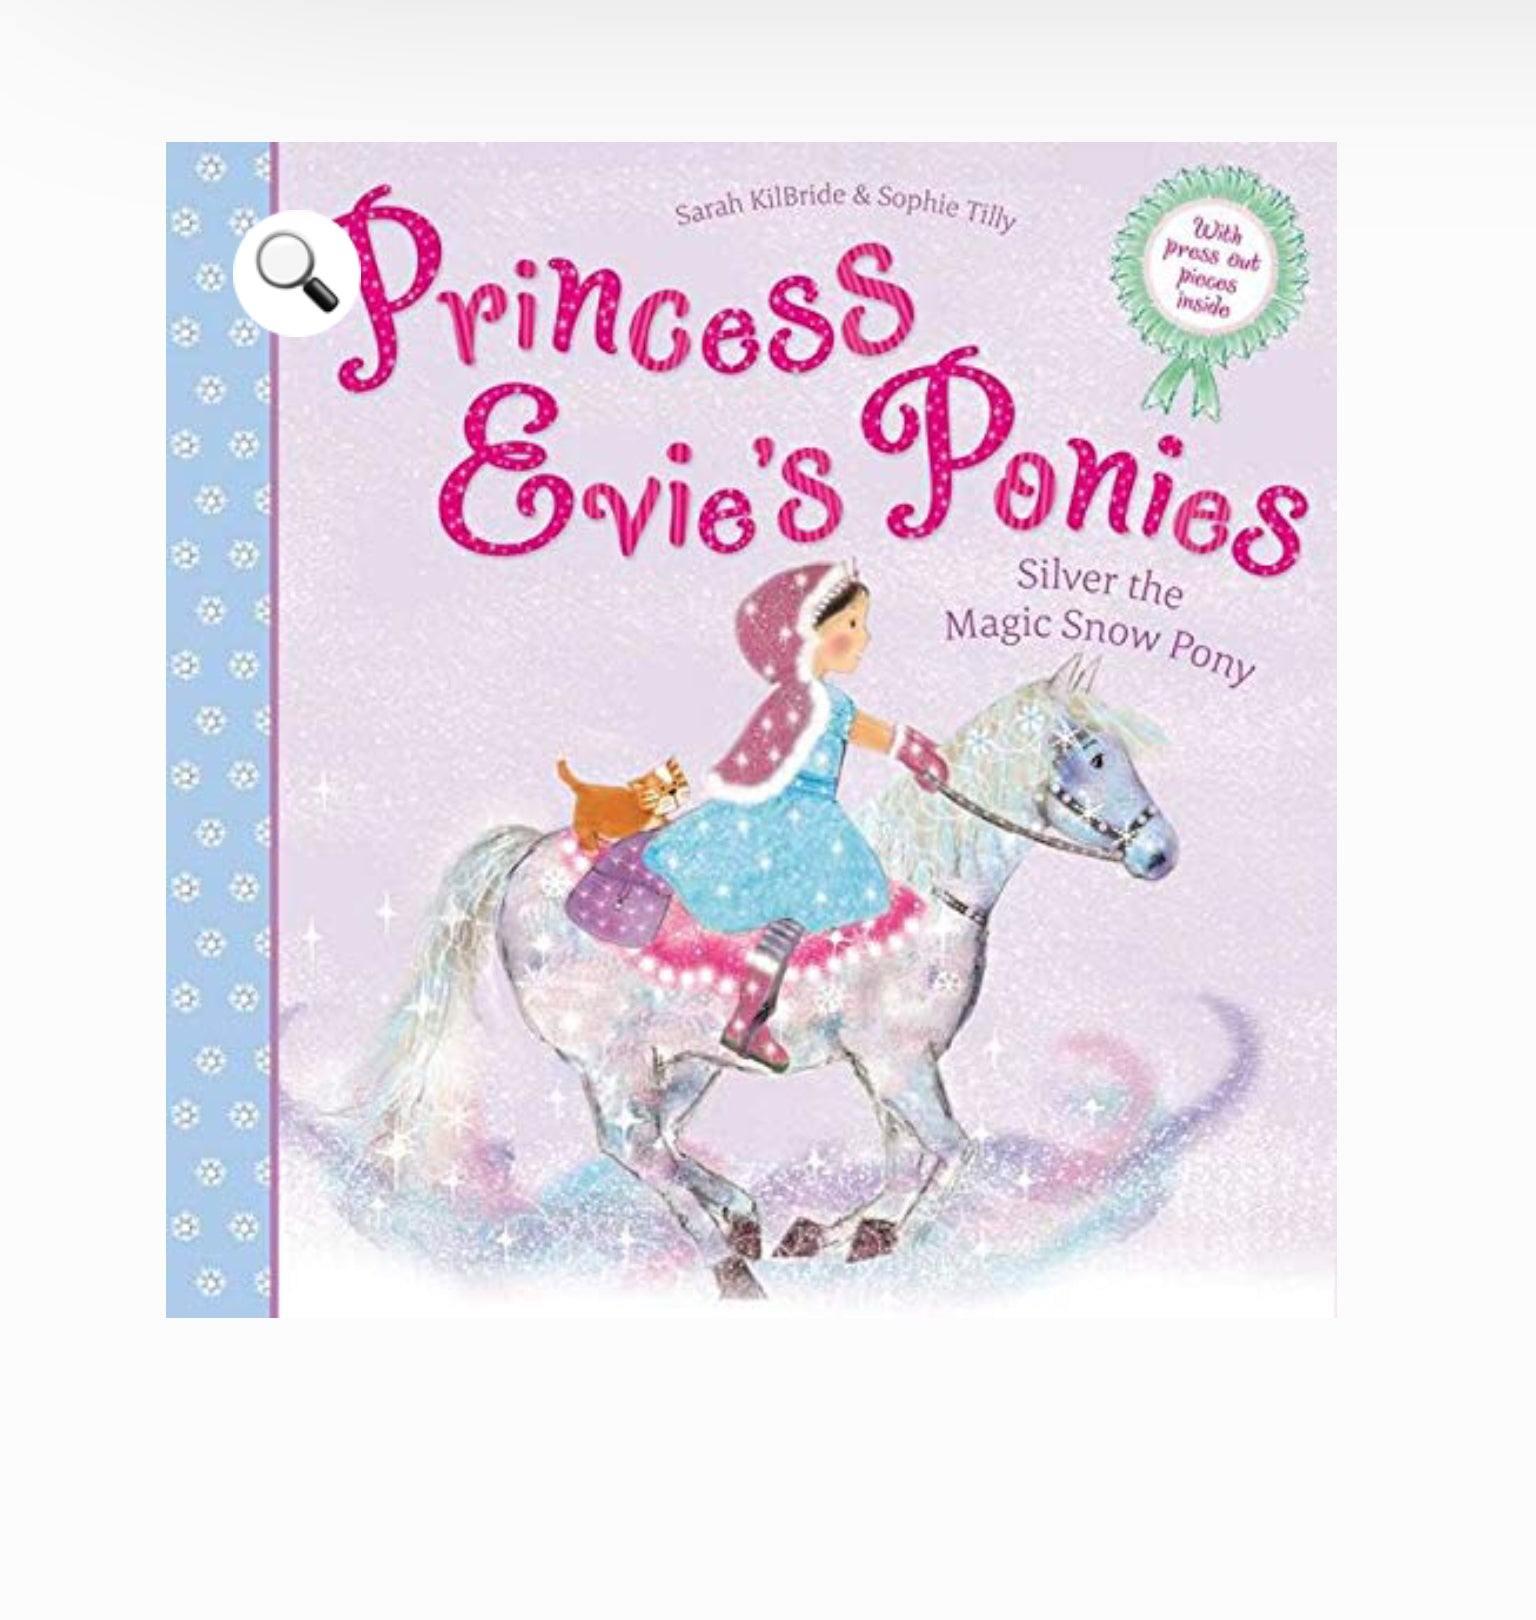 Prince Evie's Ponies - Silver the Magic Snow Pony By Sarah Kilbride